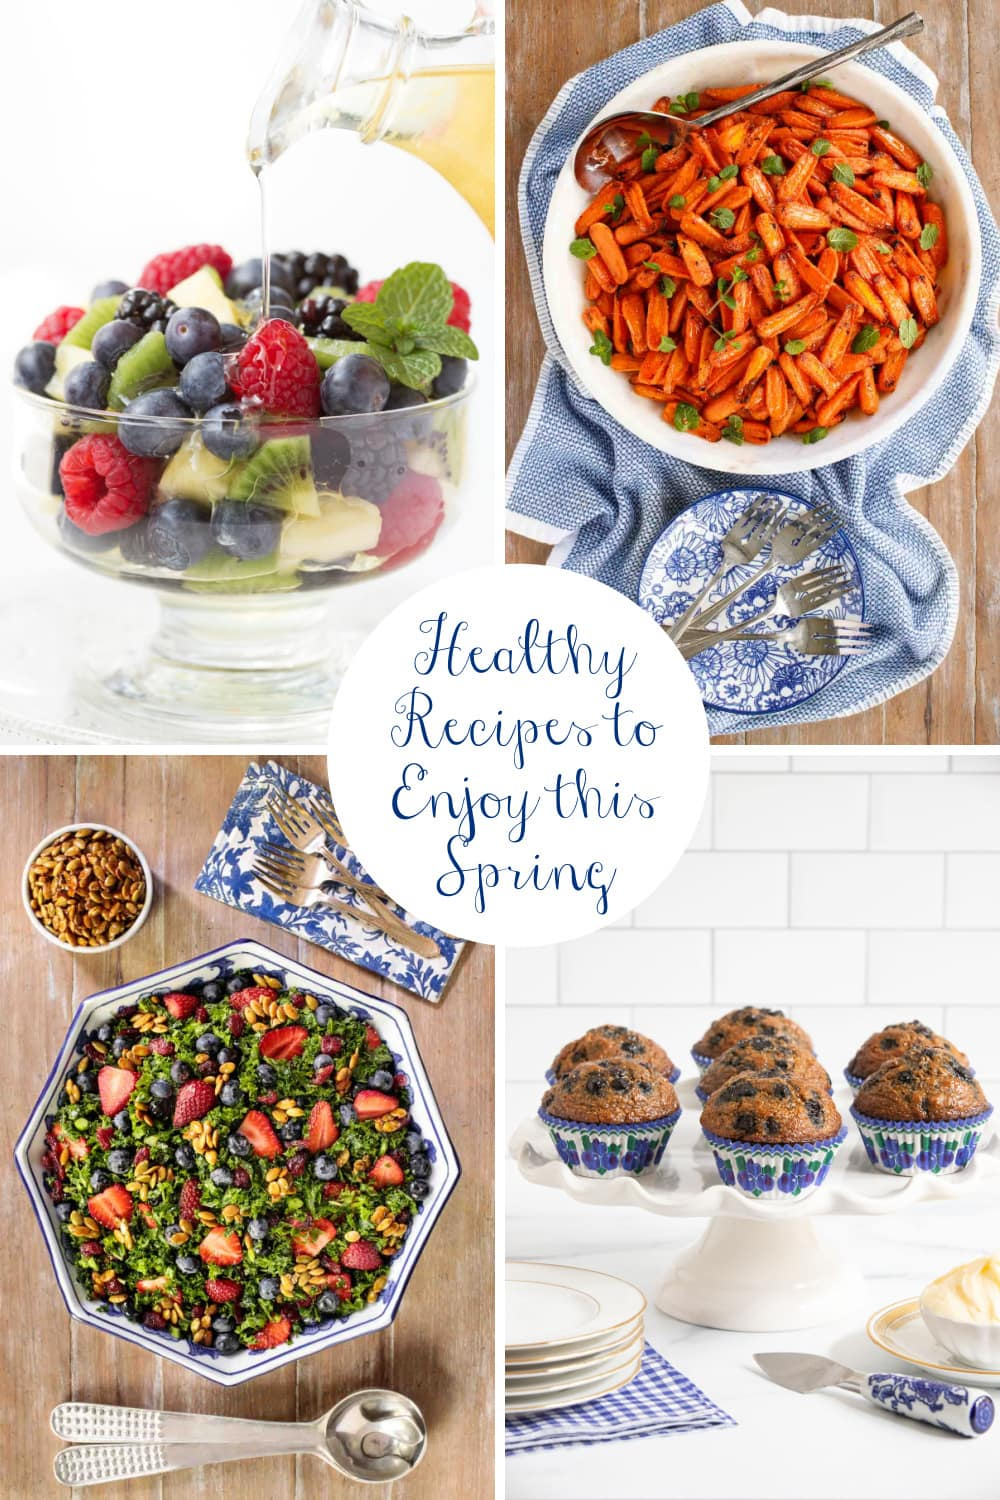 Ten Healthy, Delicious Recipes to Enjoy this Spring